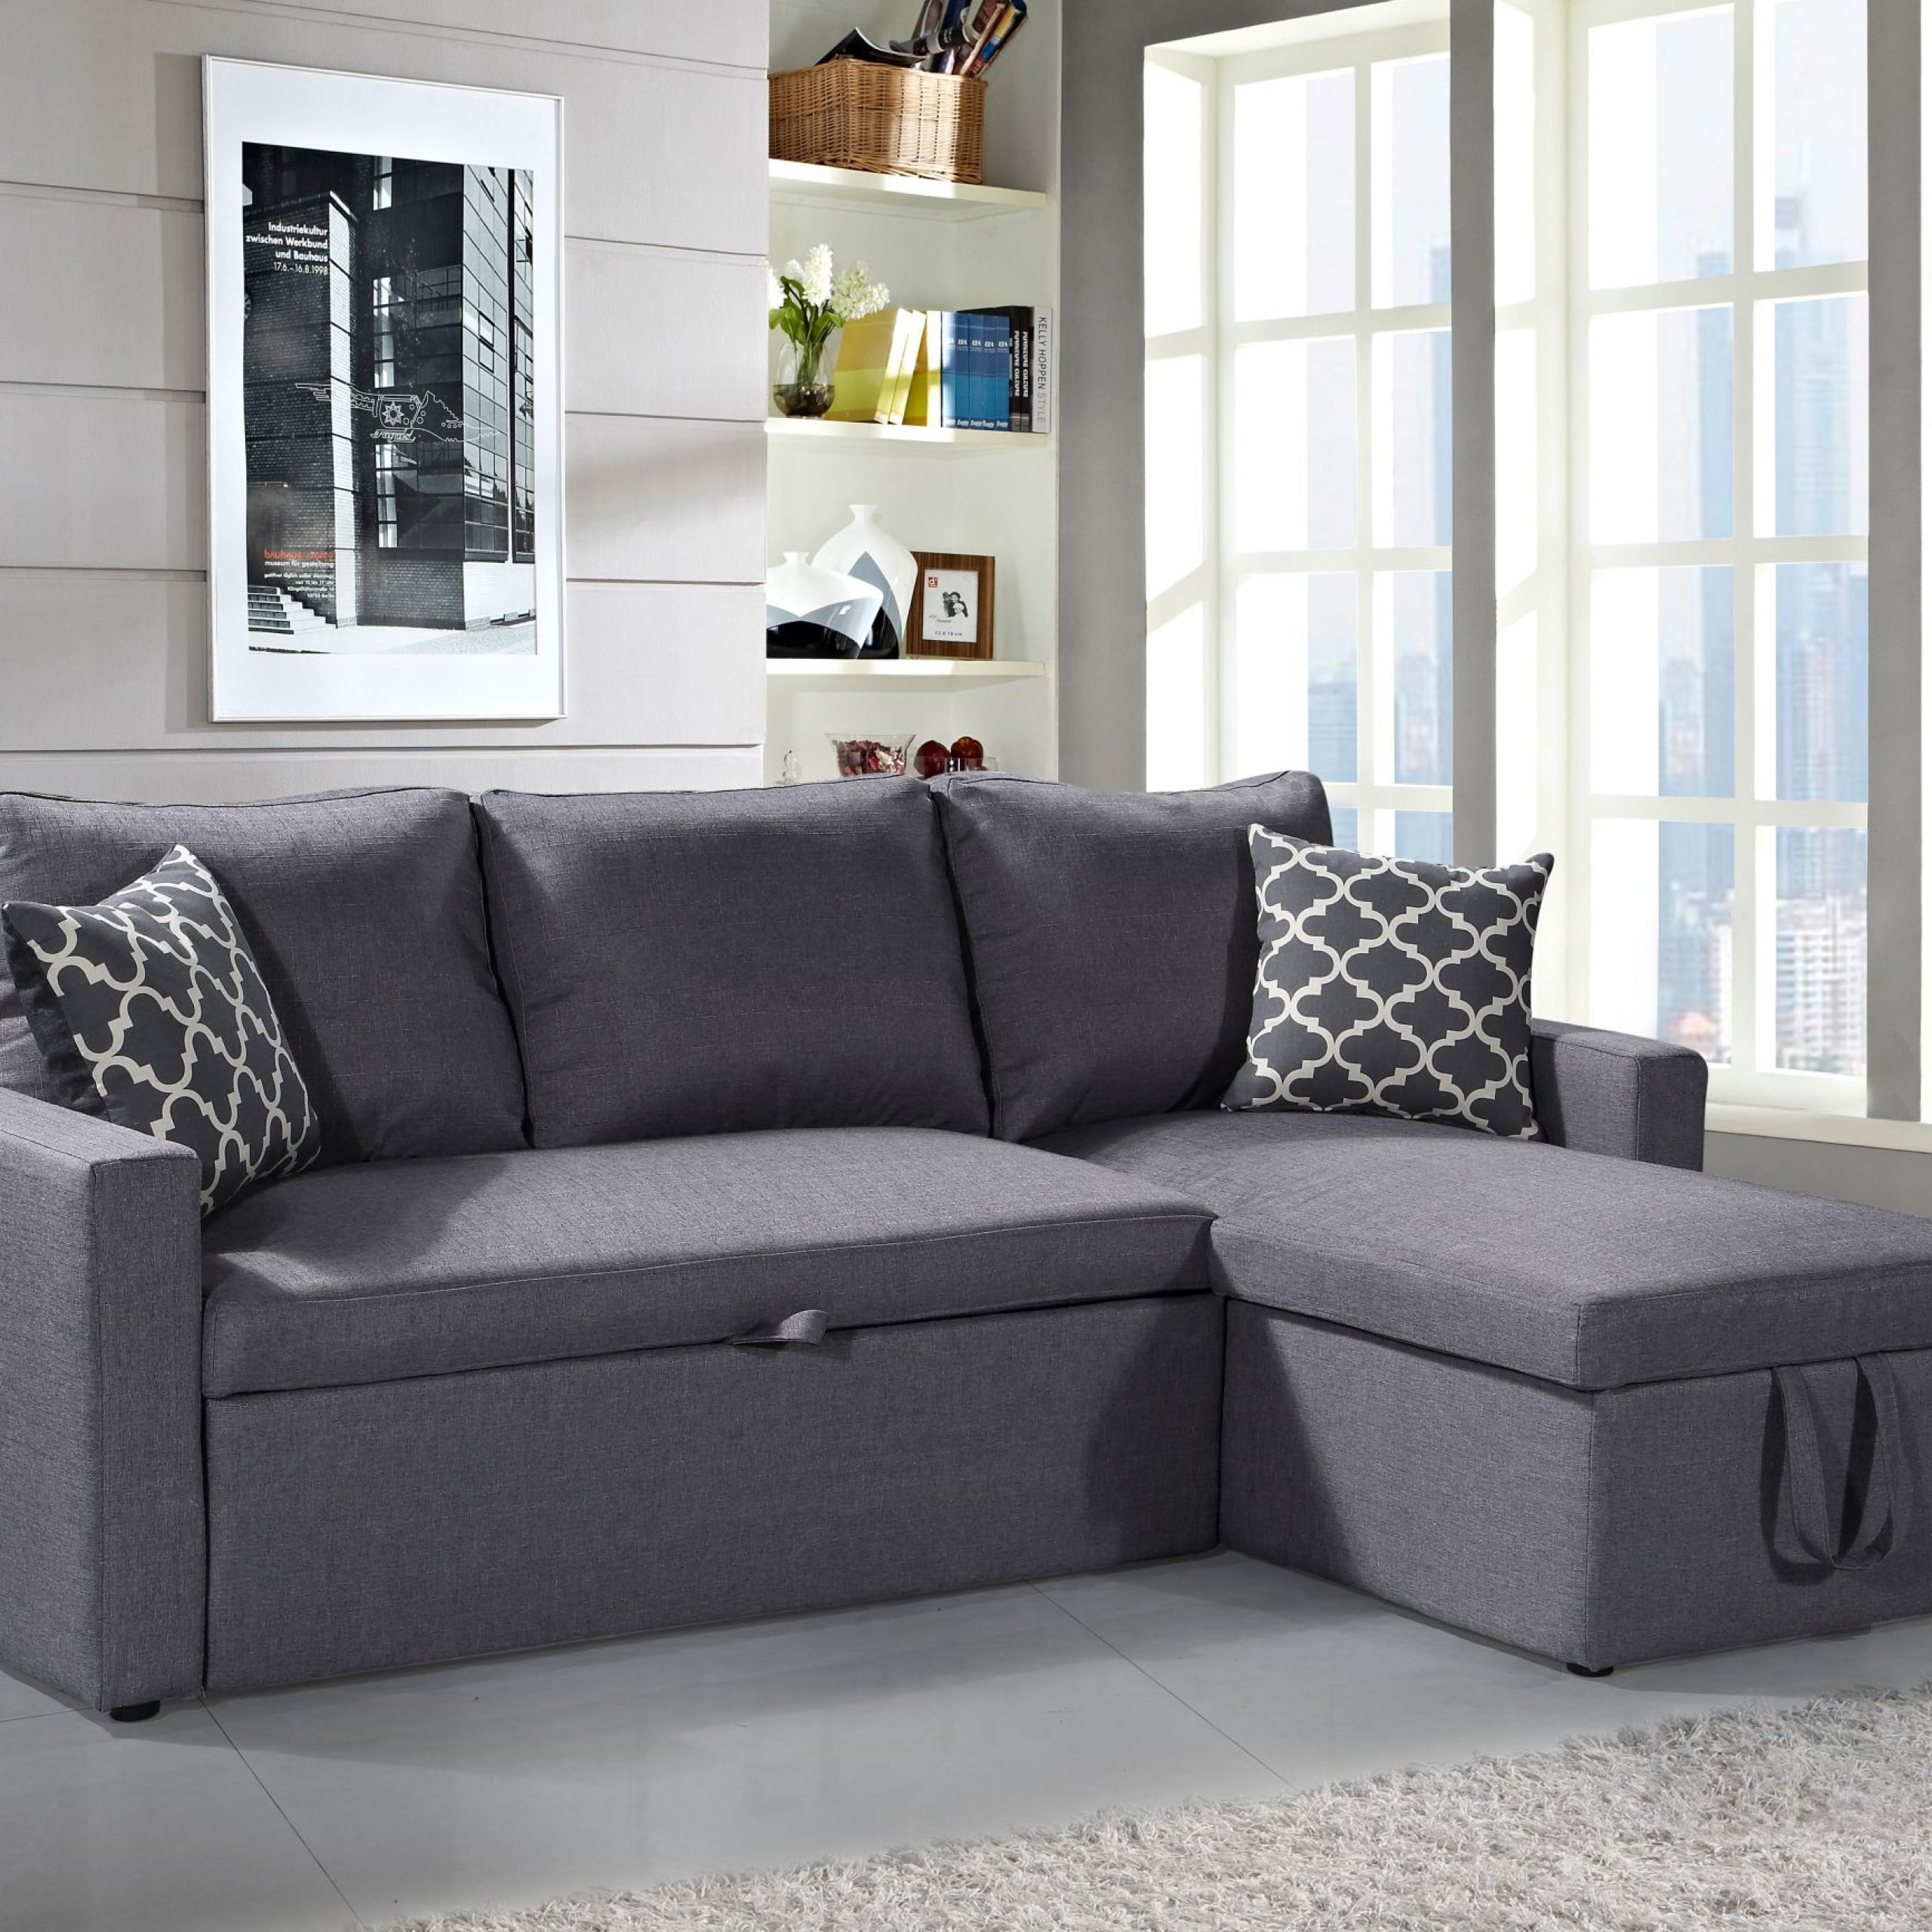 Current Live It Cozy Sectional Sofa Beds With Storage Inside Zara Sectional Sofa 3.in (View 19 of 20)